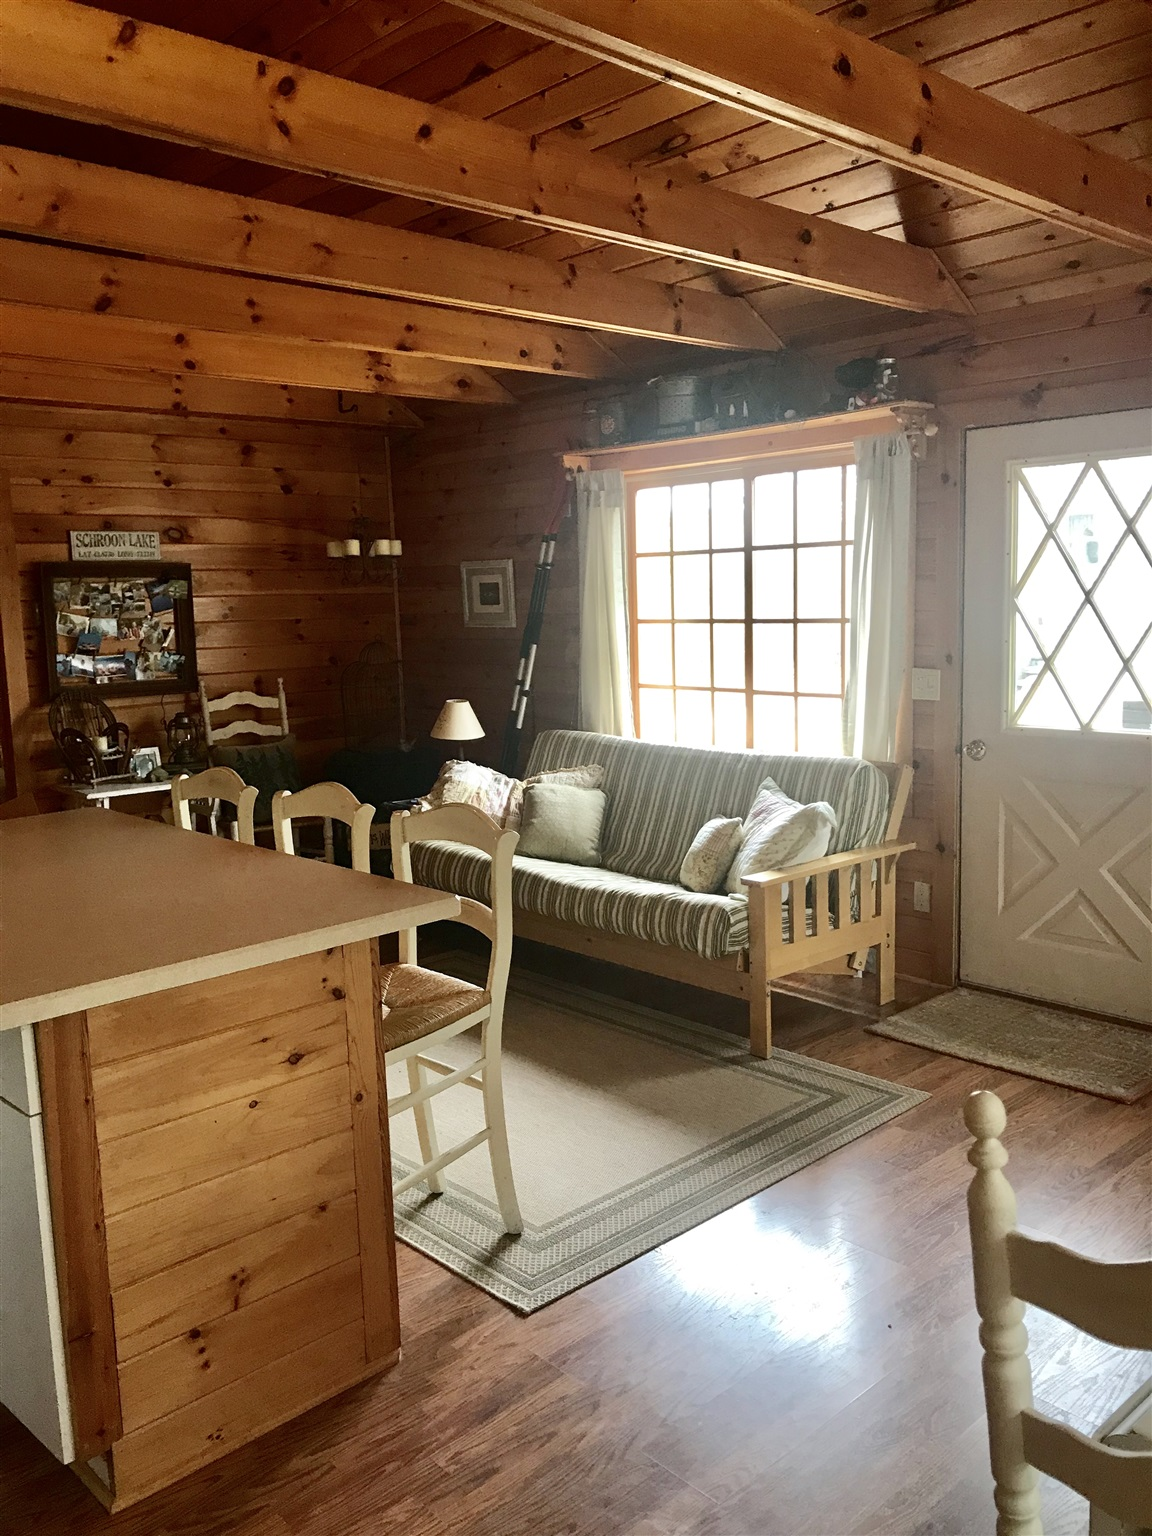 565 VALLEY FARM RD in Pottersville, NY Listed For $199,000 ...